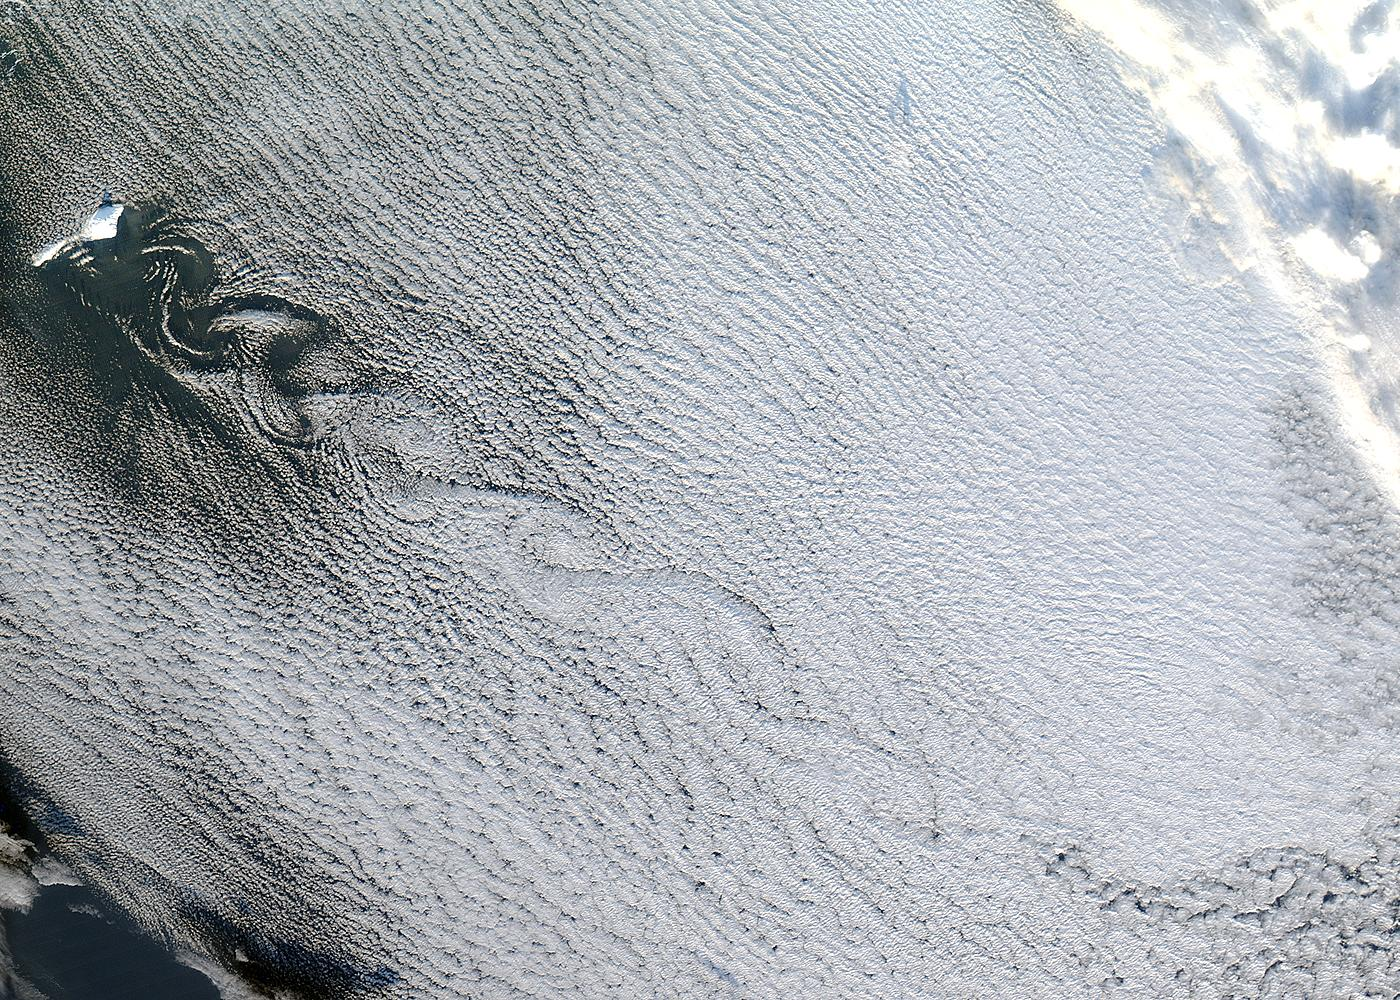 Cloud vortices off Jan Mayen Island, Greenland Sea - related image preview